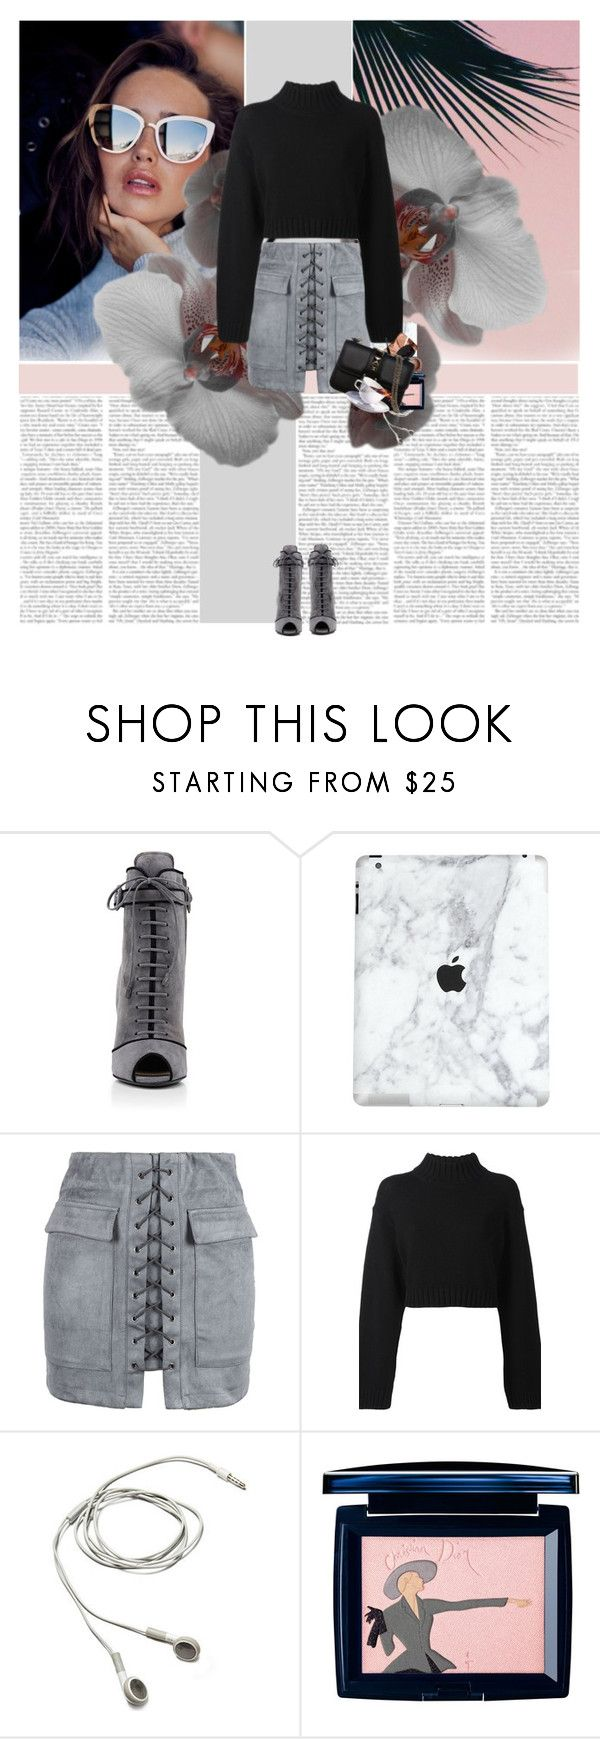 """""""Untitled"""" by alina ❤ liked on Polyvore featuring Quay, Prada, WithChic, DKNY, Christian Dior and Valentino"""